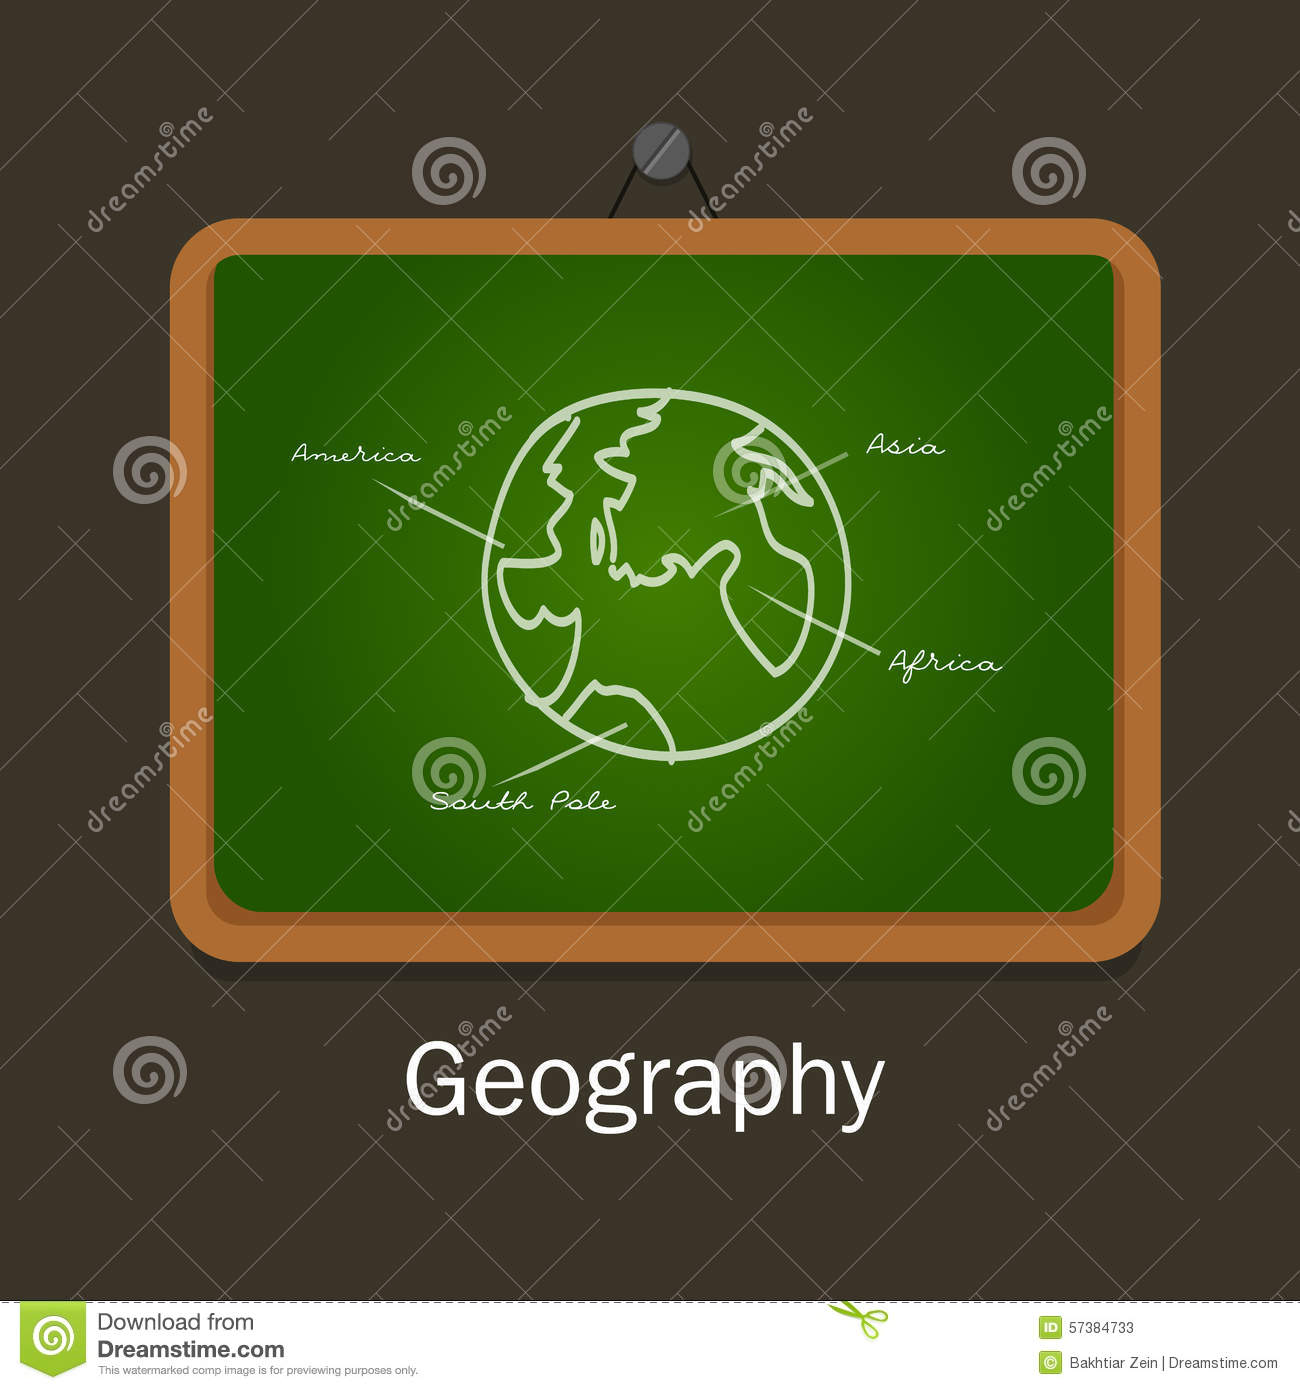 Geography college classes subjects